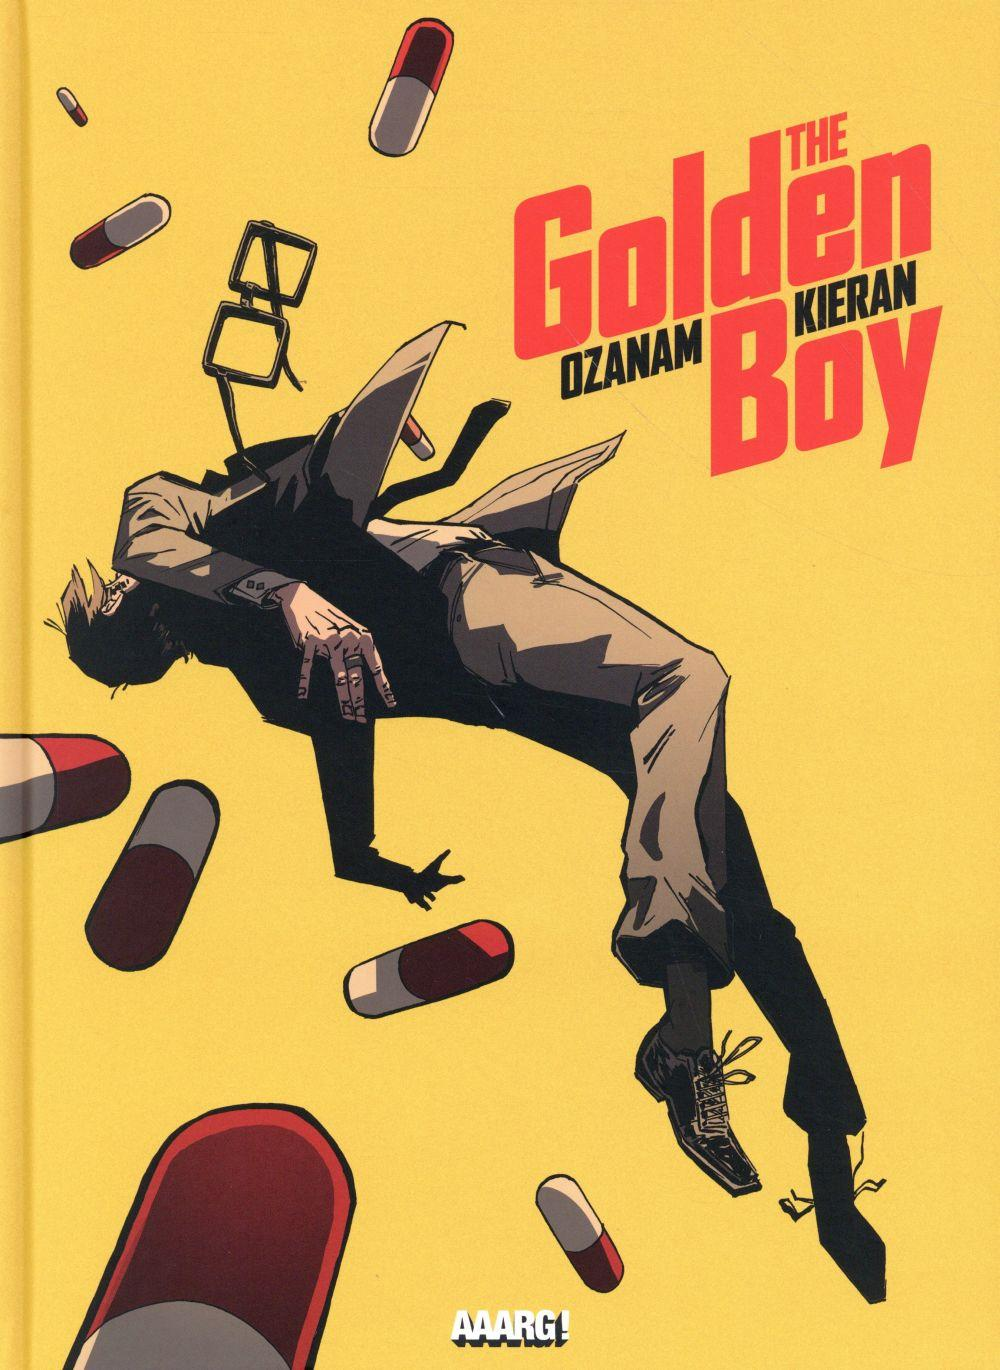 The golden boy  - Kieran  - Ozanam